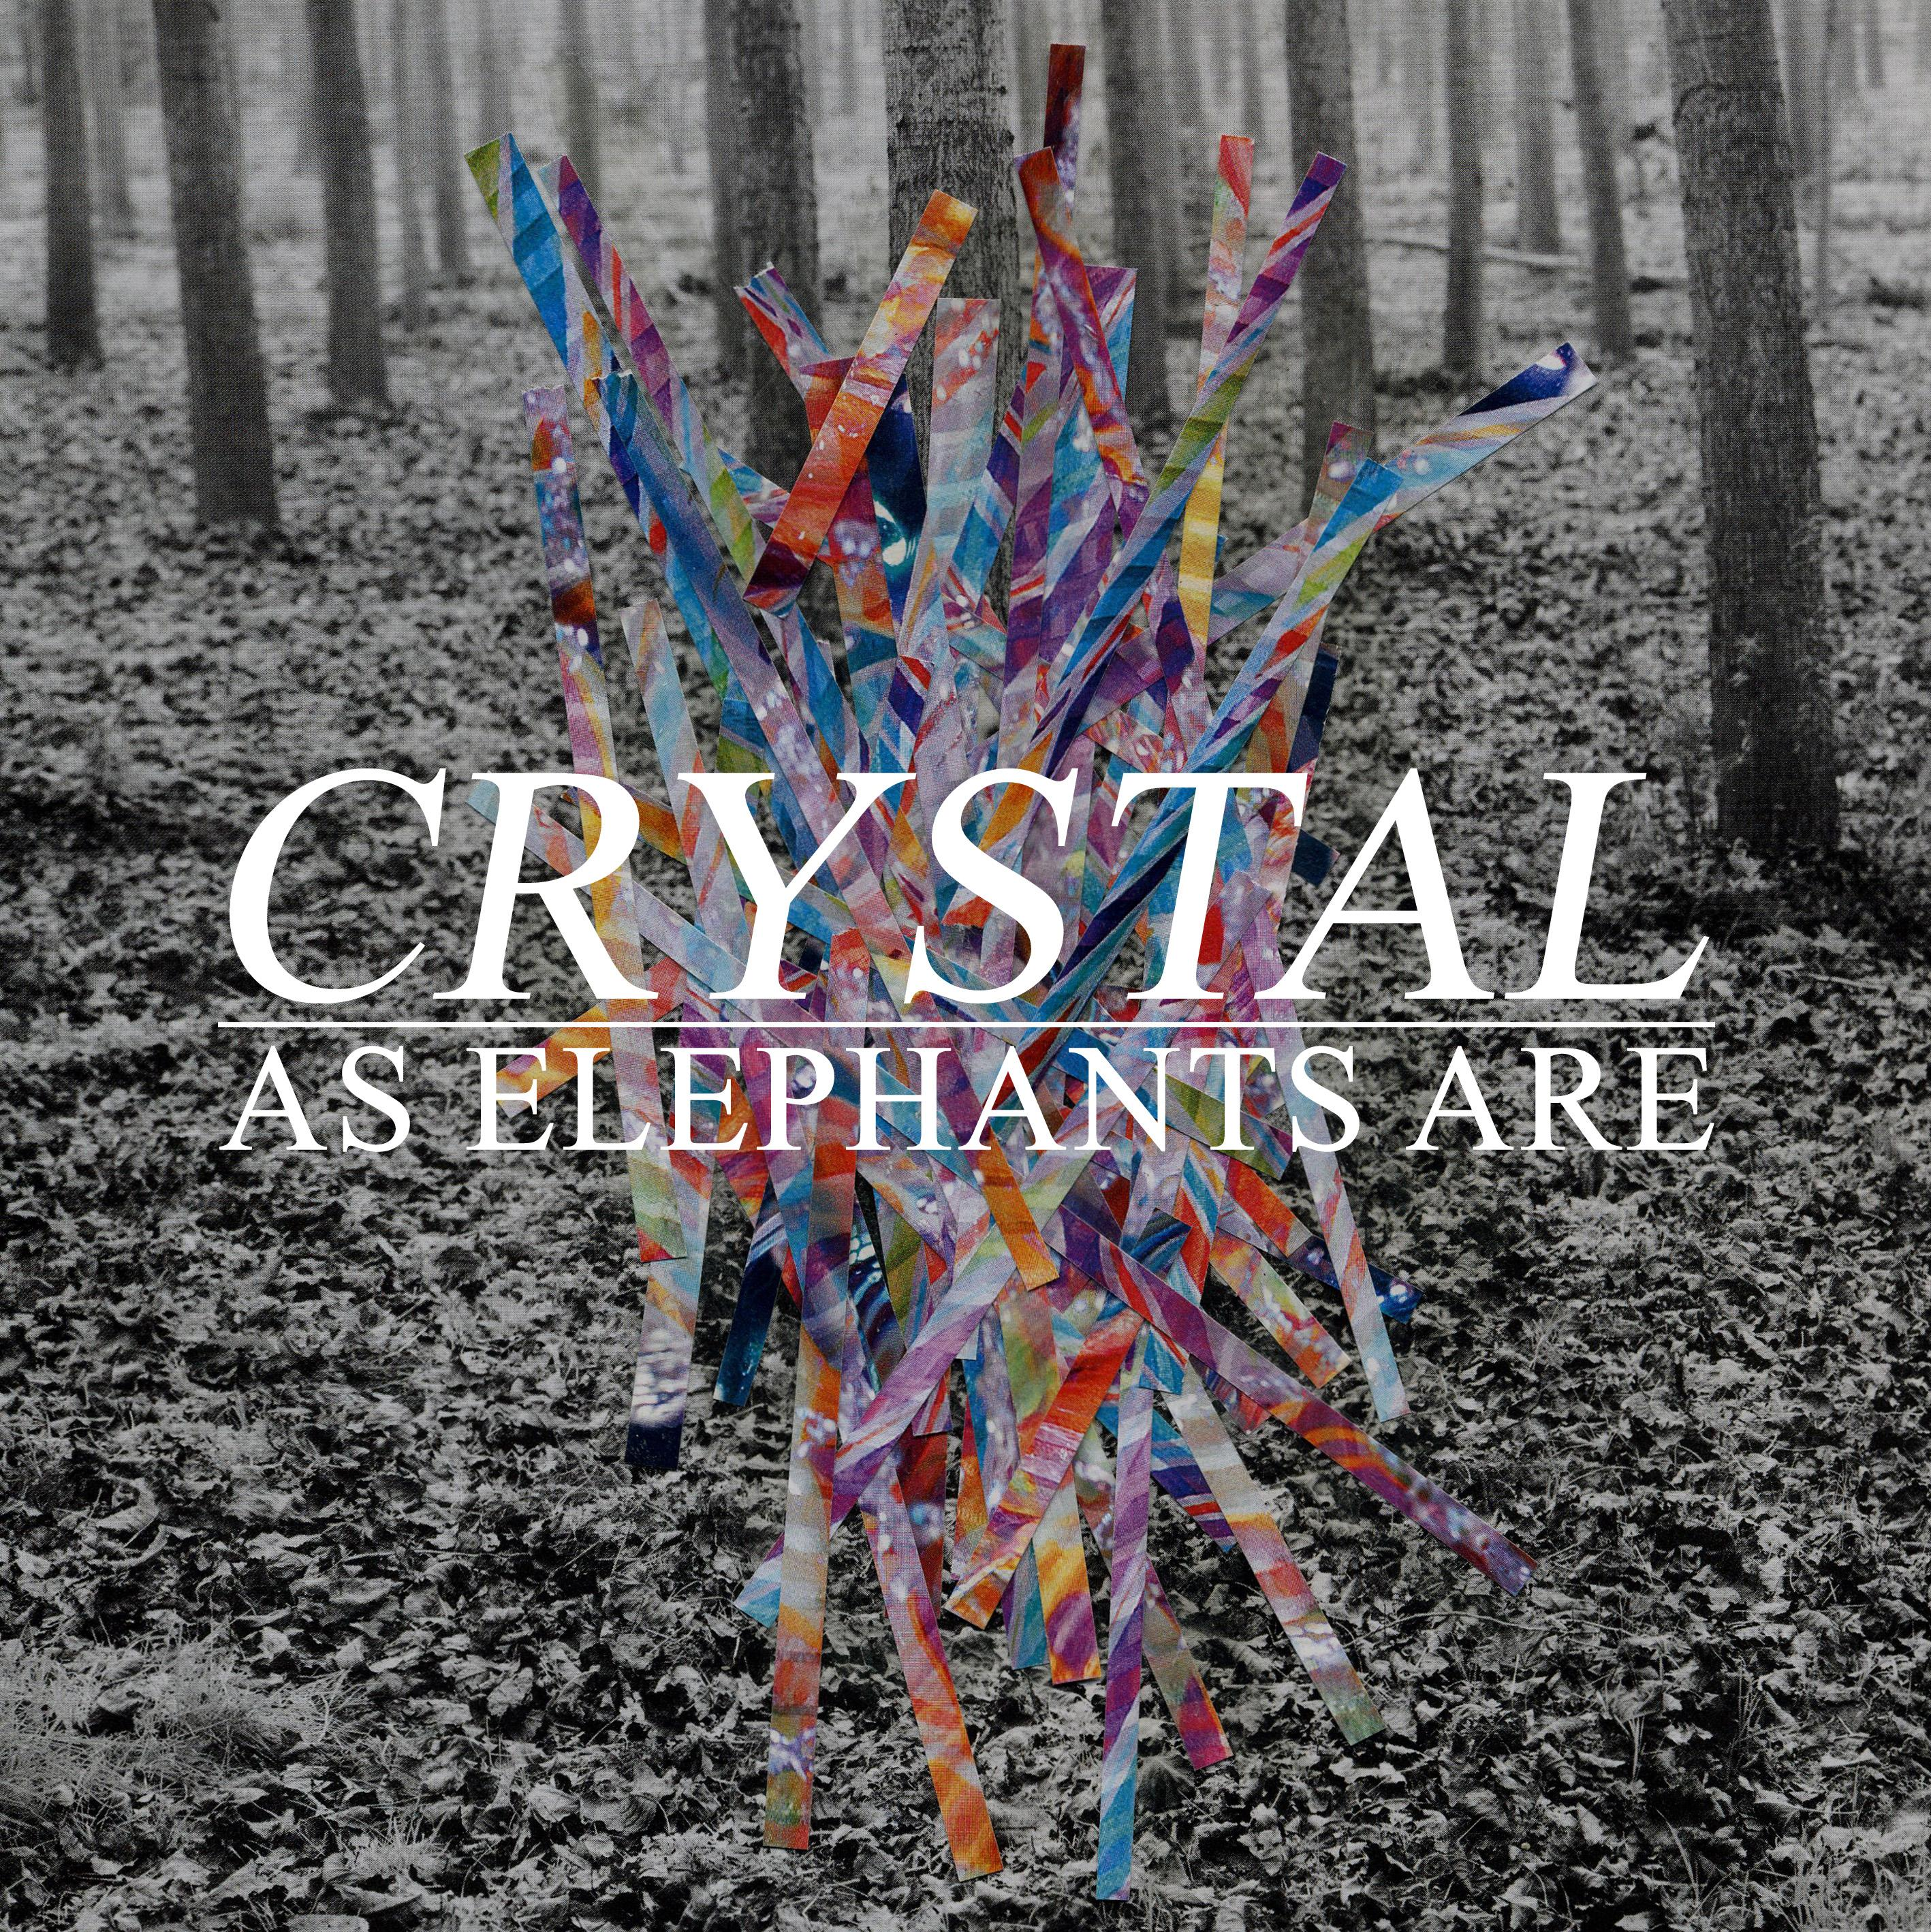 As Elephants Are Crystal